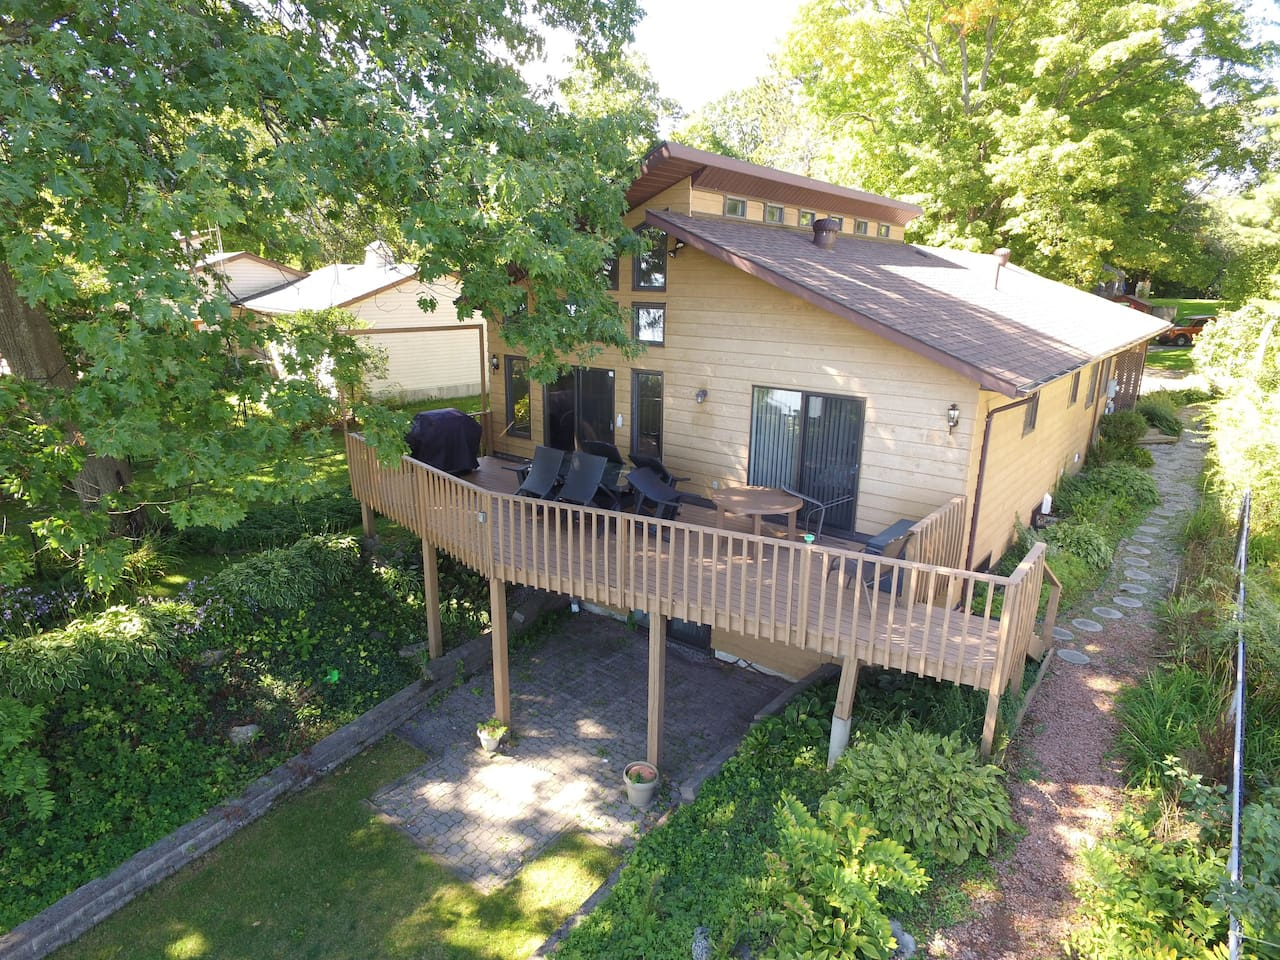 Overhead shot of the back of the house